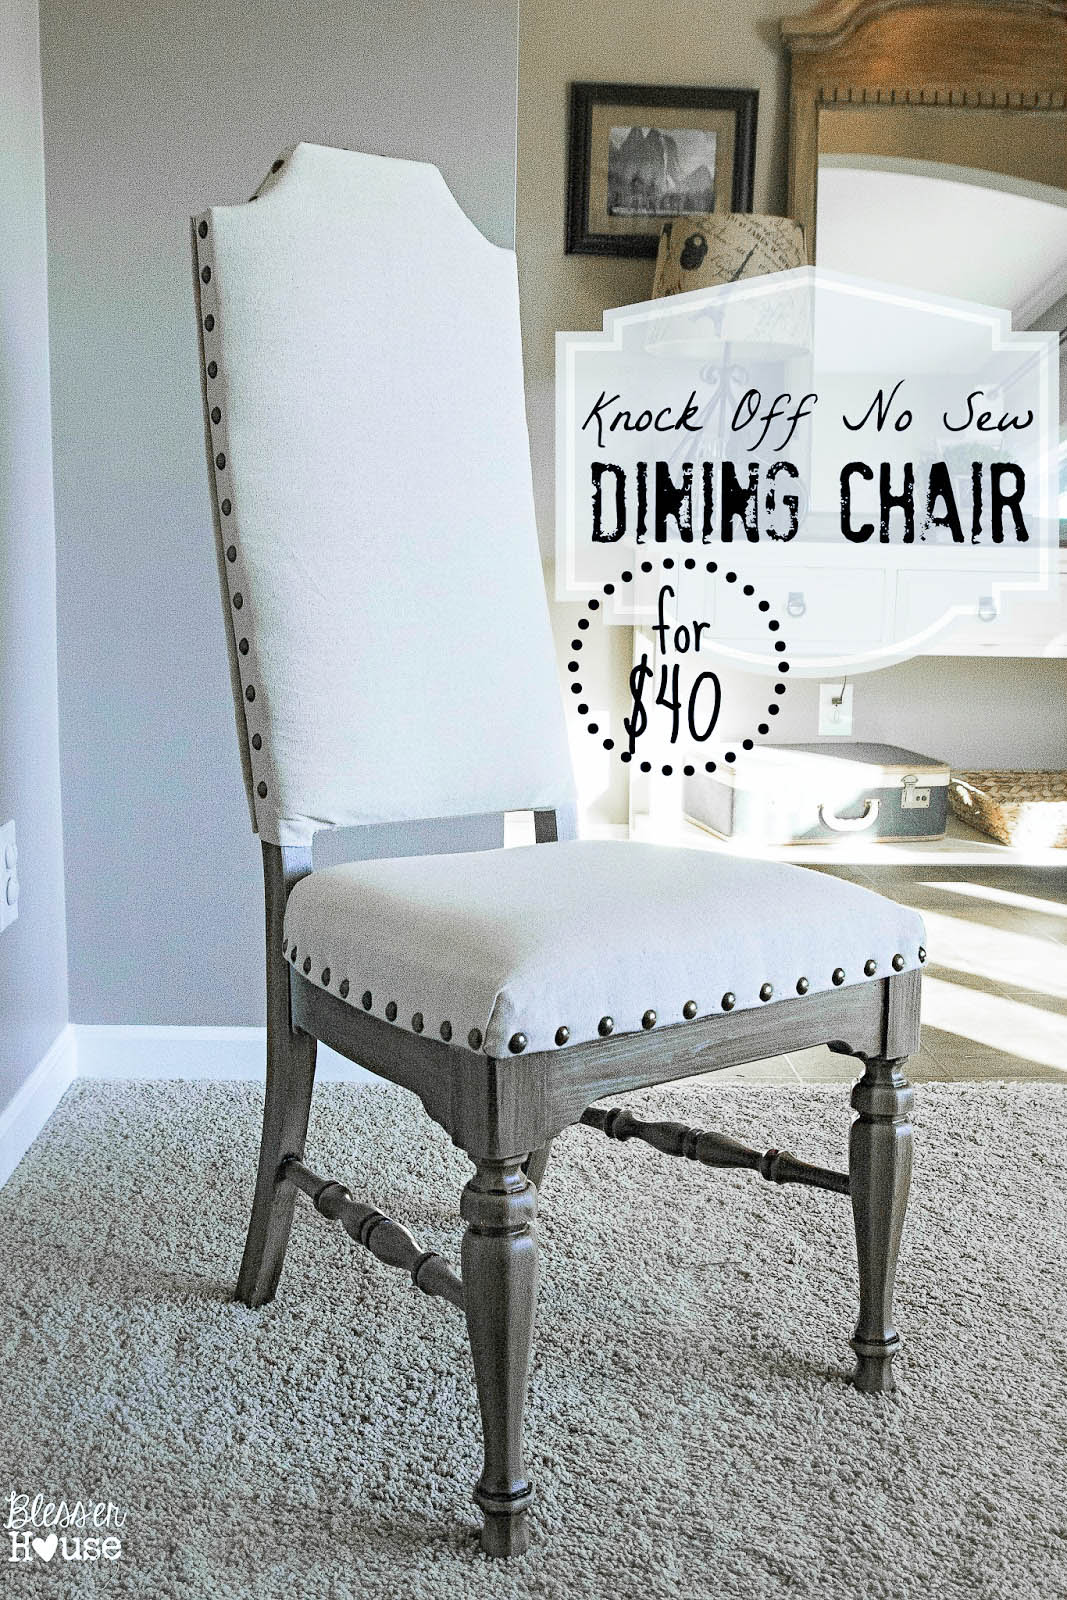 High Back Leather Dining Chair in addition Fabric Upholstered Dining Chairs further Upholstered Sofa Grey Chesterfield Style Button Tufted further B654 Carved Oak Dining Chairs additionally Id F 1249332. on dining room chairs upholstered with oak legs